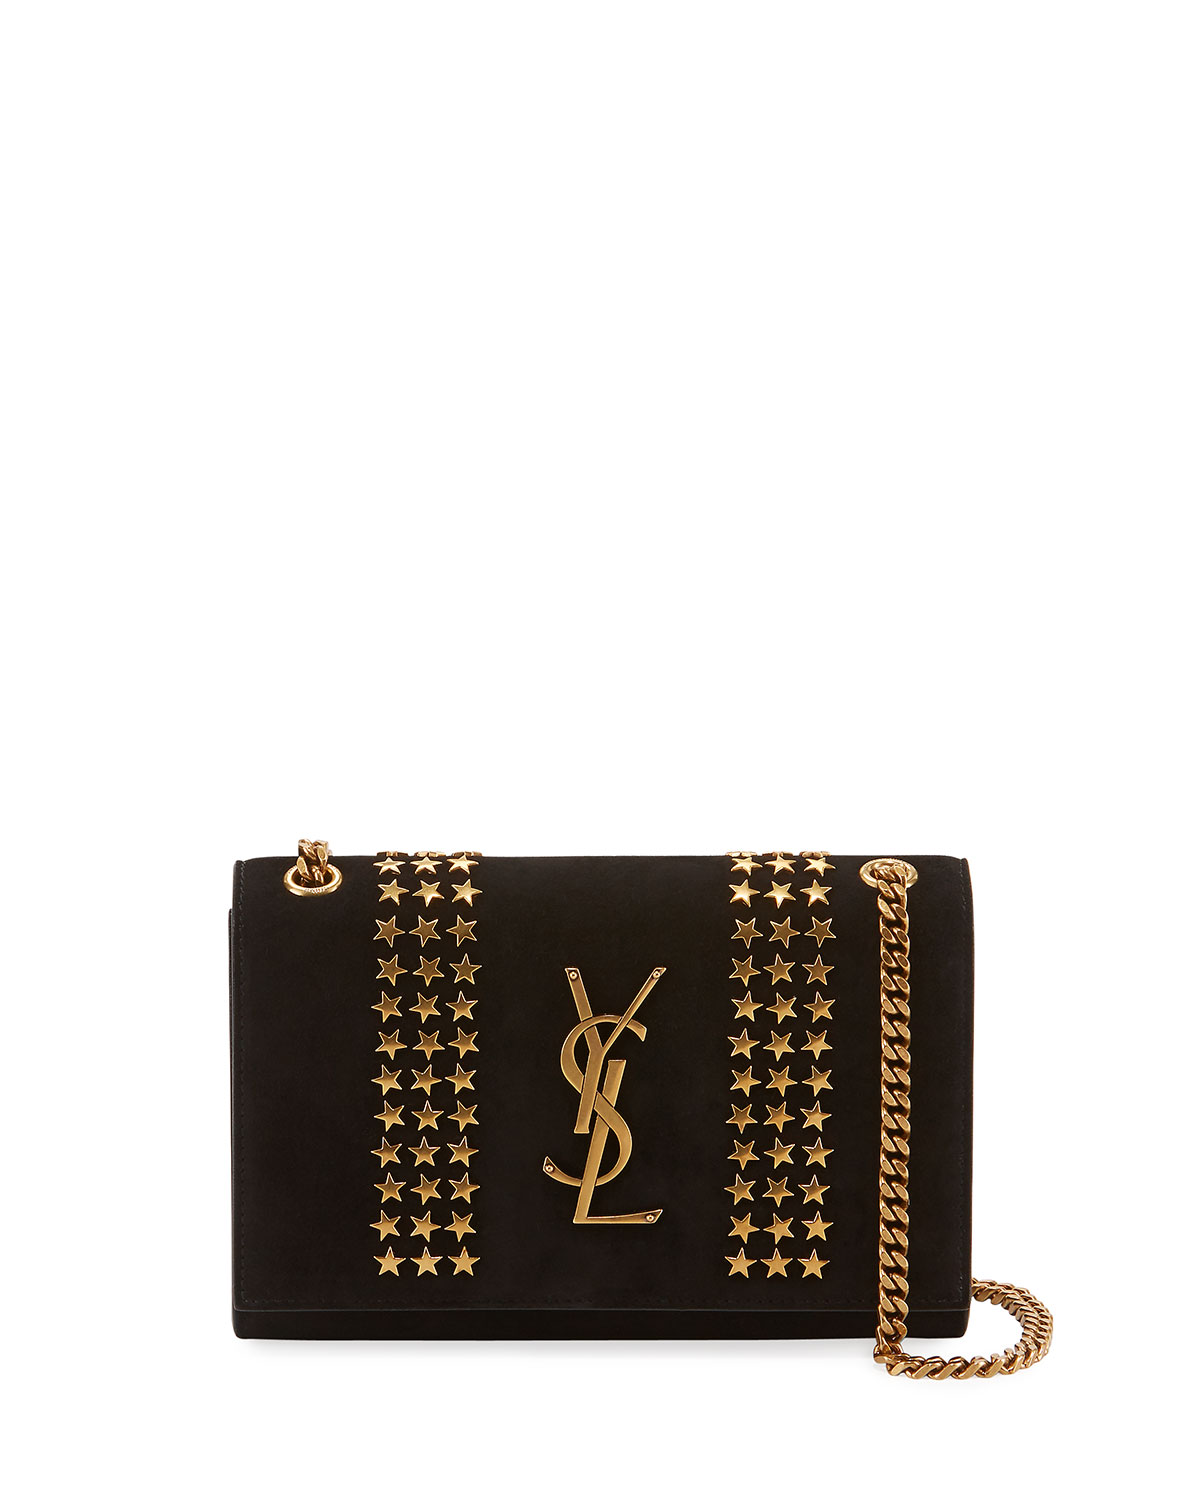 bfce08cbf65f Saint LaurentKate Monogram YSL Small Star-Studded Suede Chain Crossbody Bag